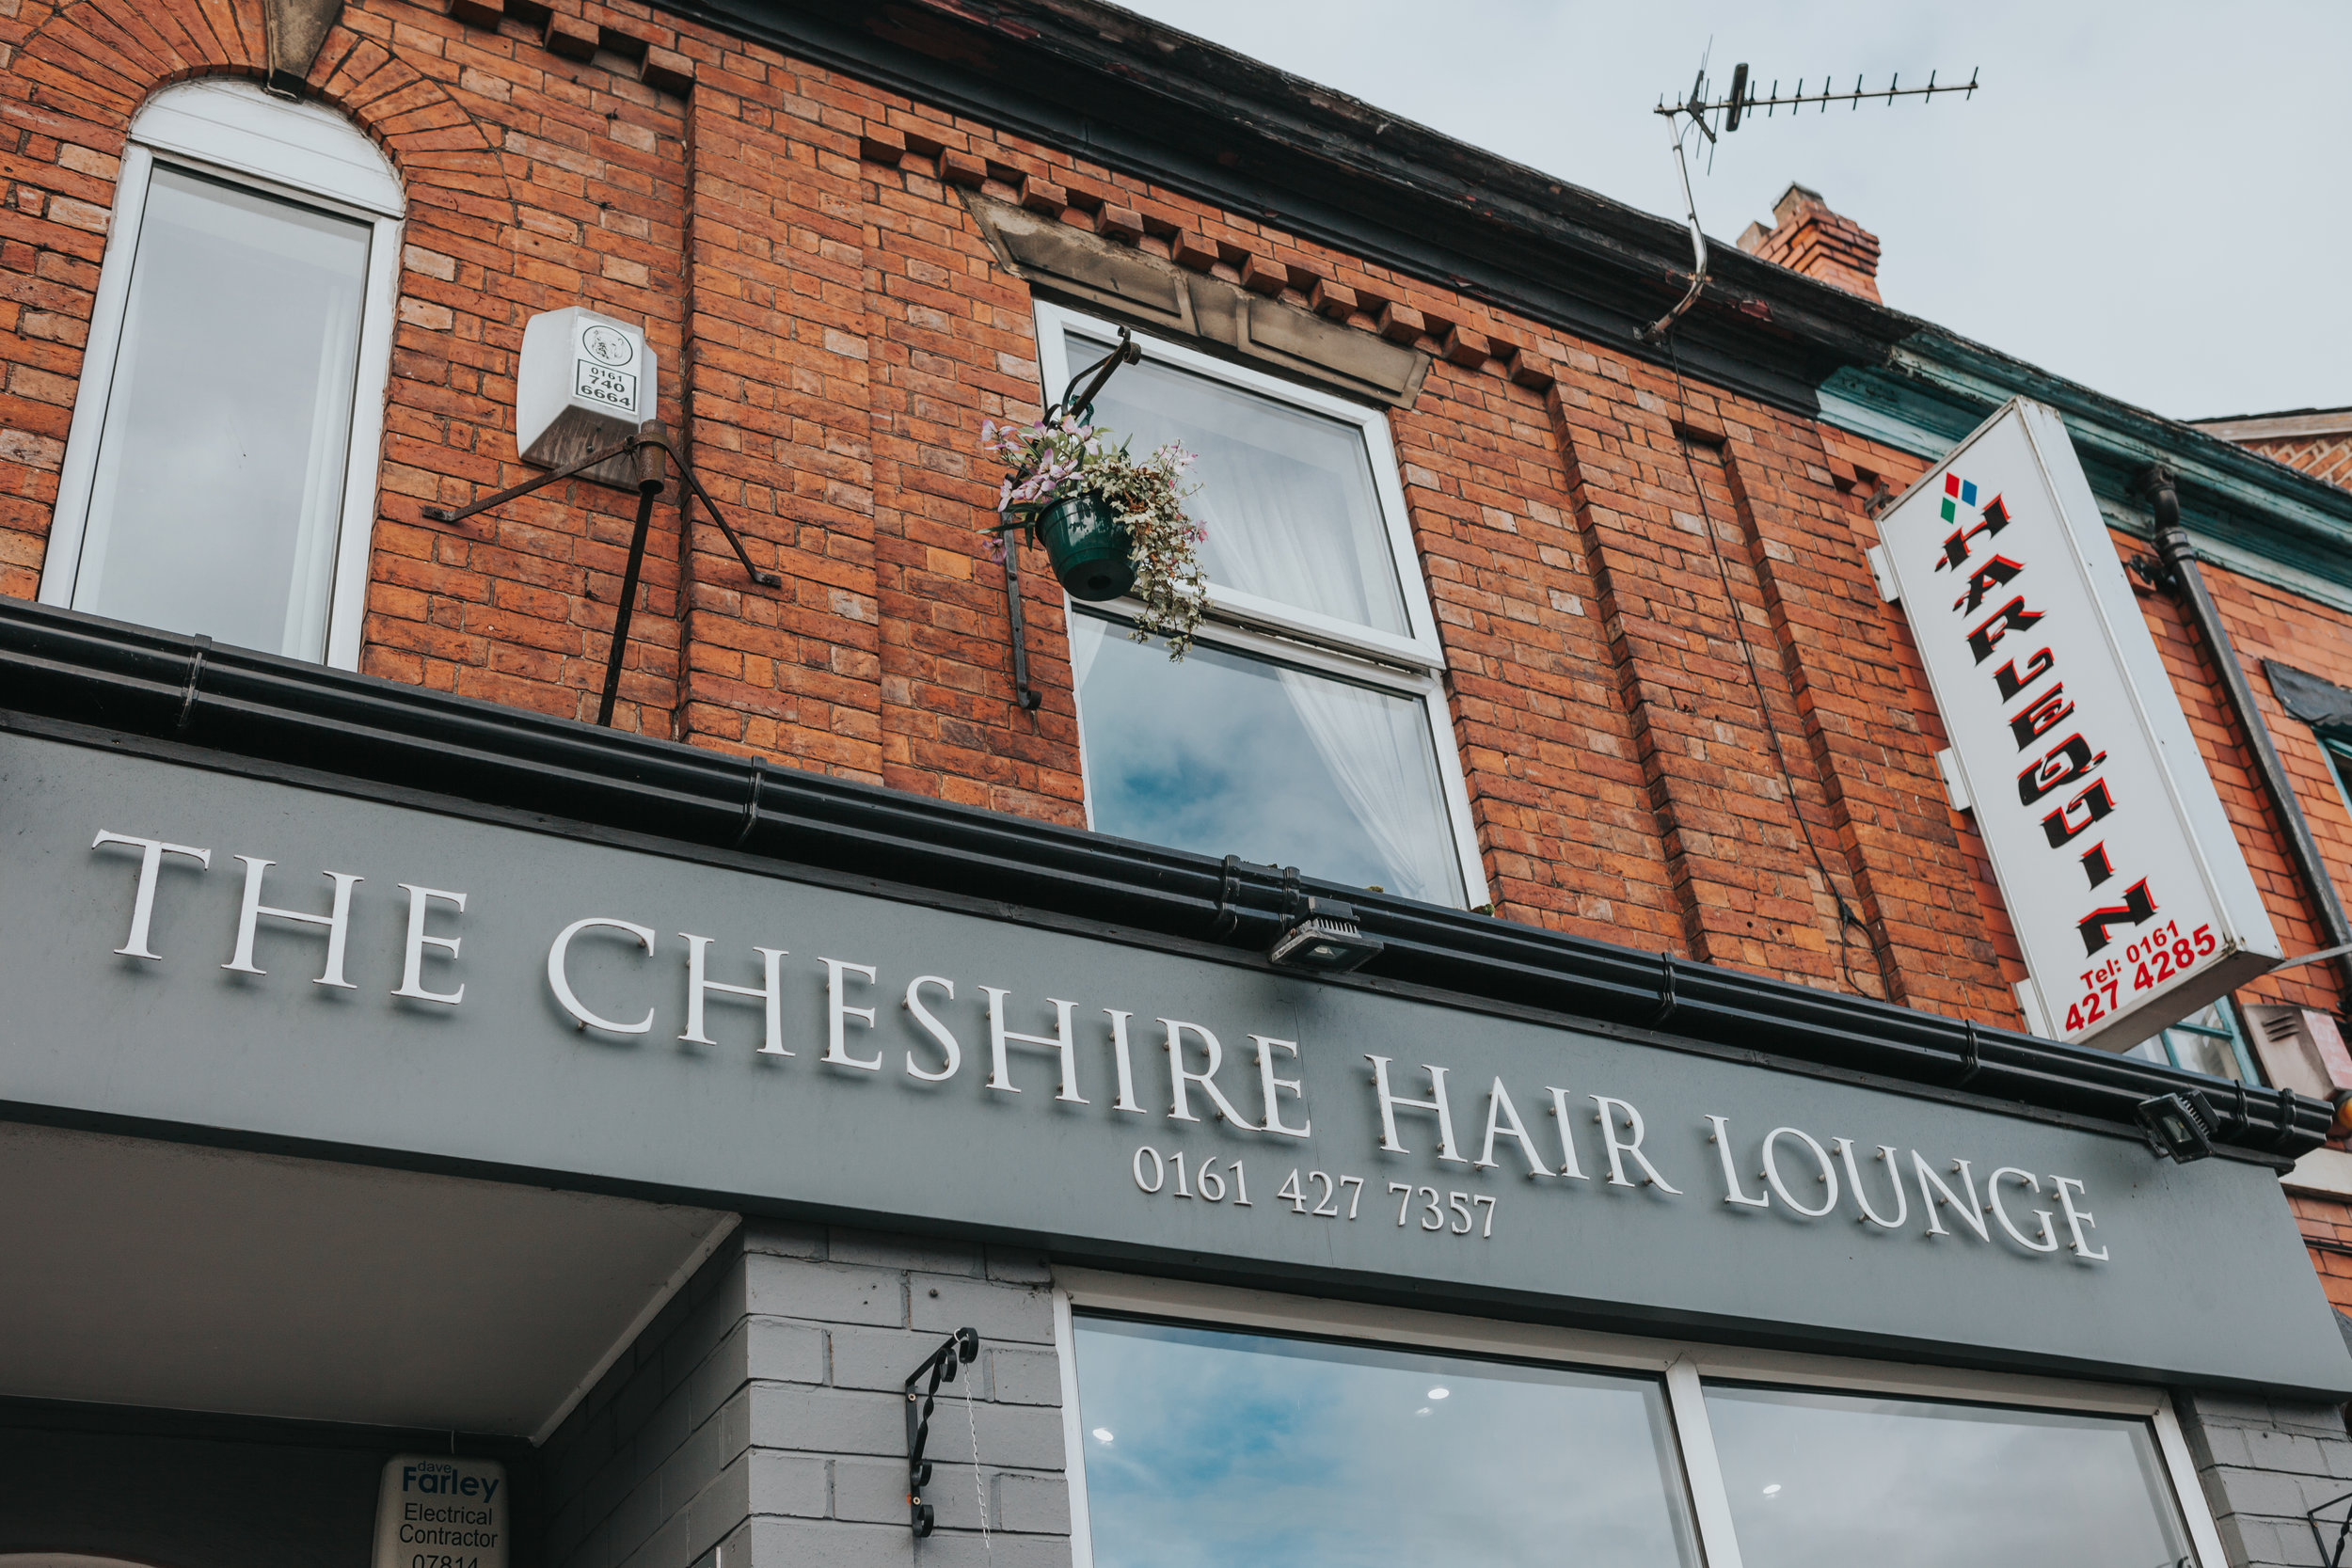 Cheshire Hair Salon